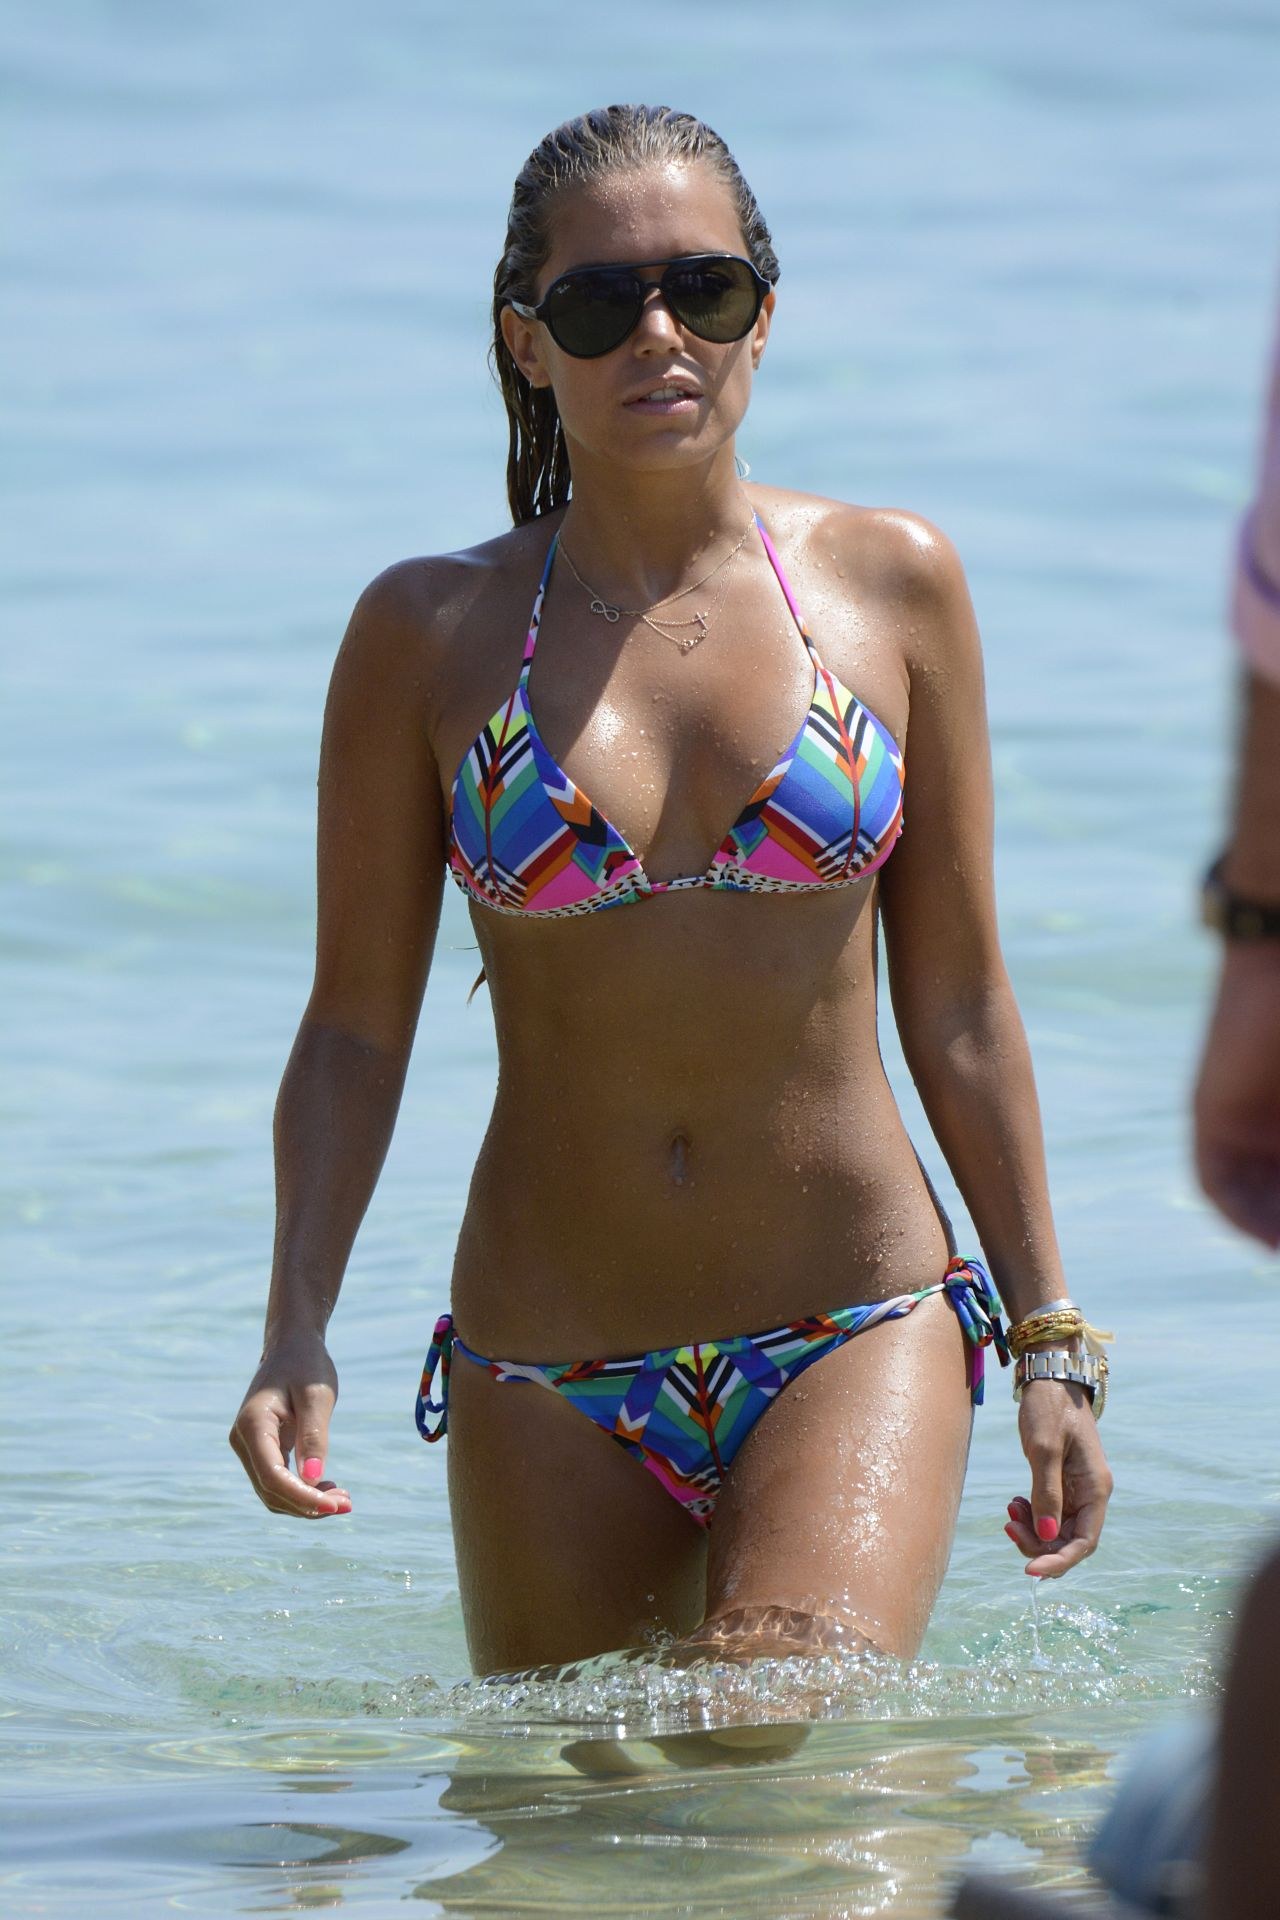 Sylvie Meis in Black Bikini on the beach in Miami Pic 6 of 35